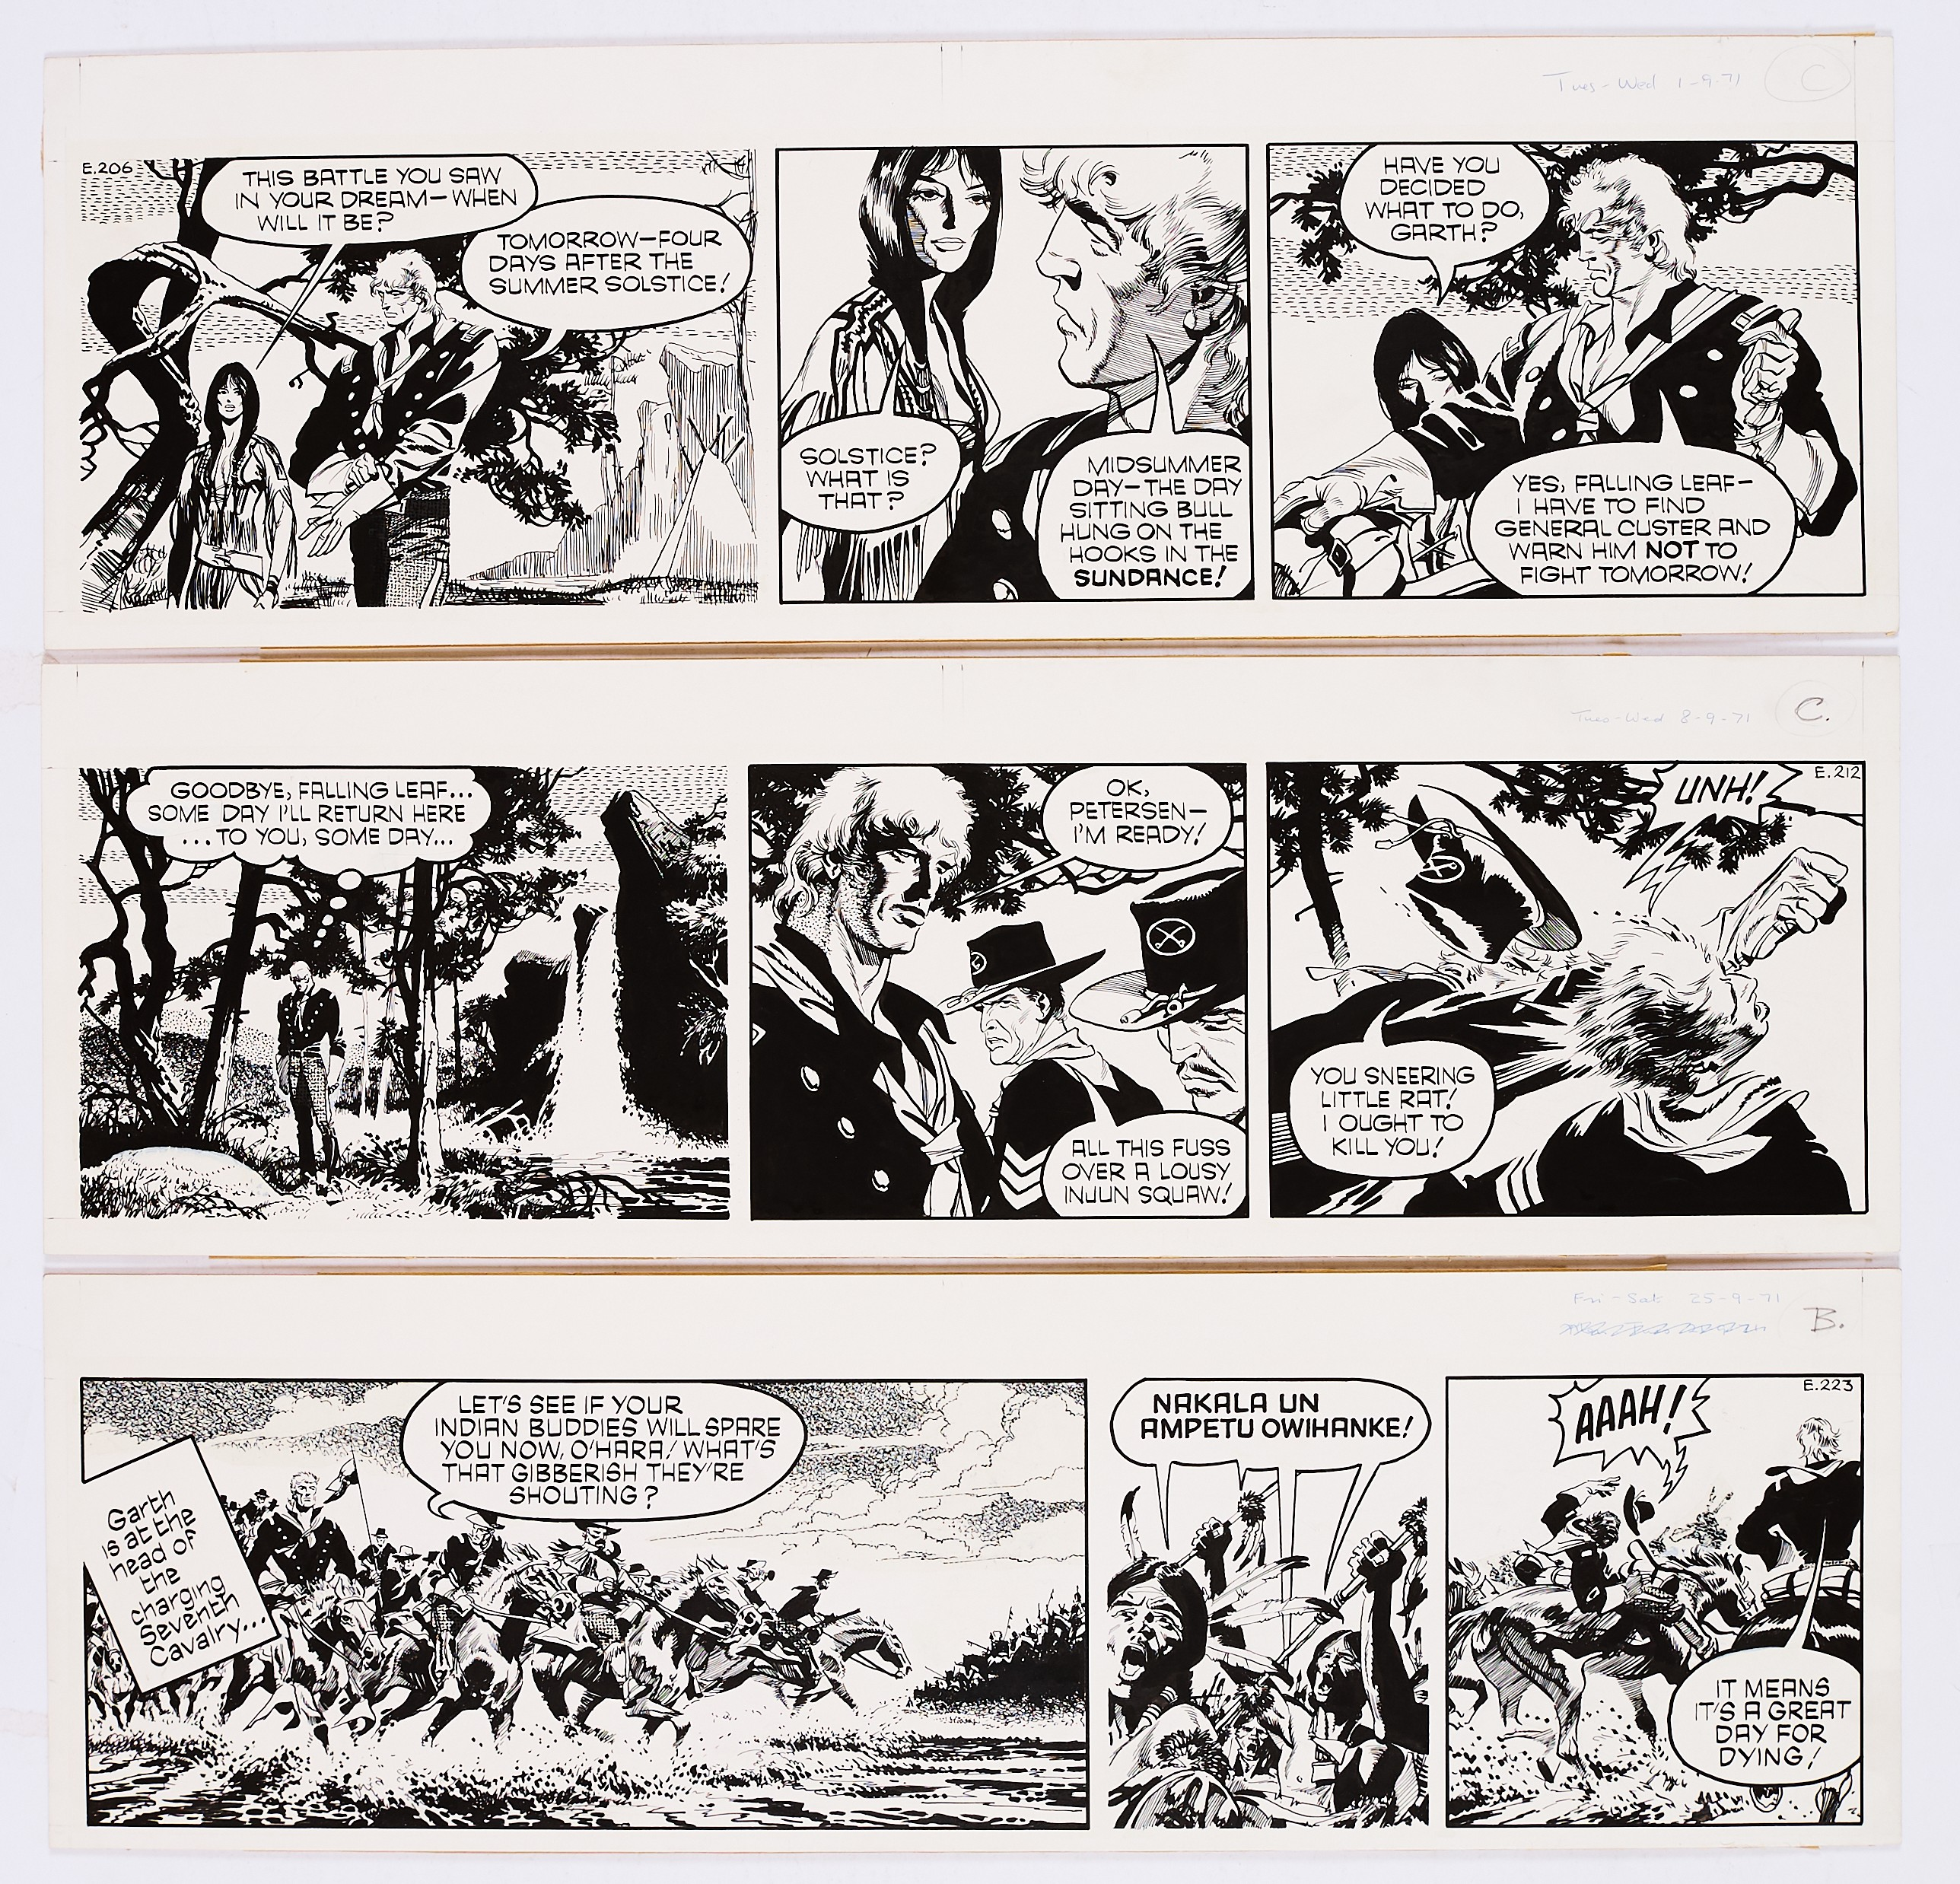 Lot 112 - Garth: 3 original artworks (1971) by Frank Bellamy from the Daily Mirror 1st/8th/25th September